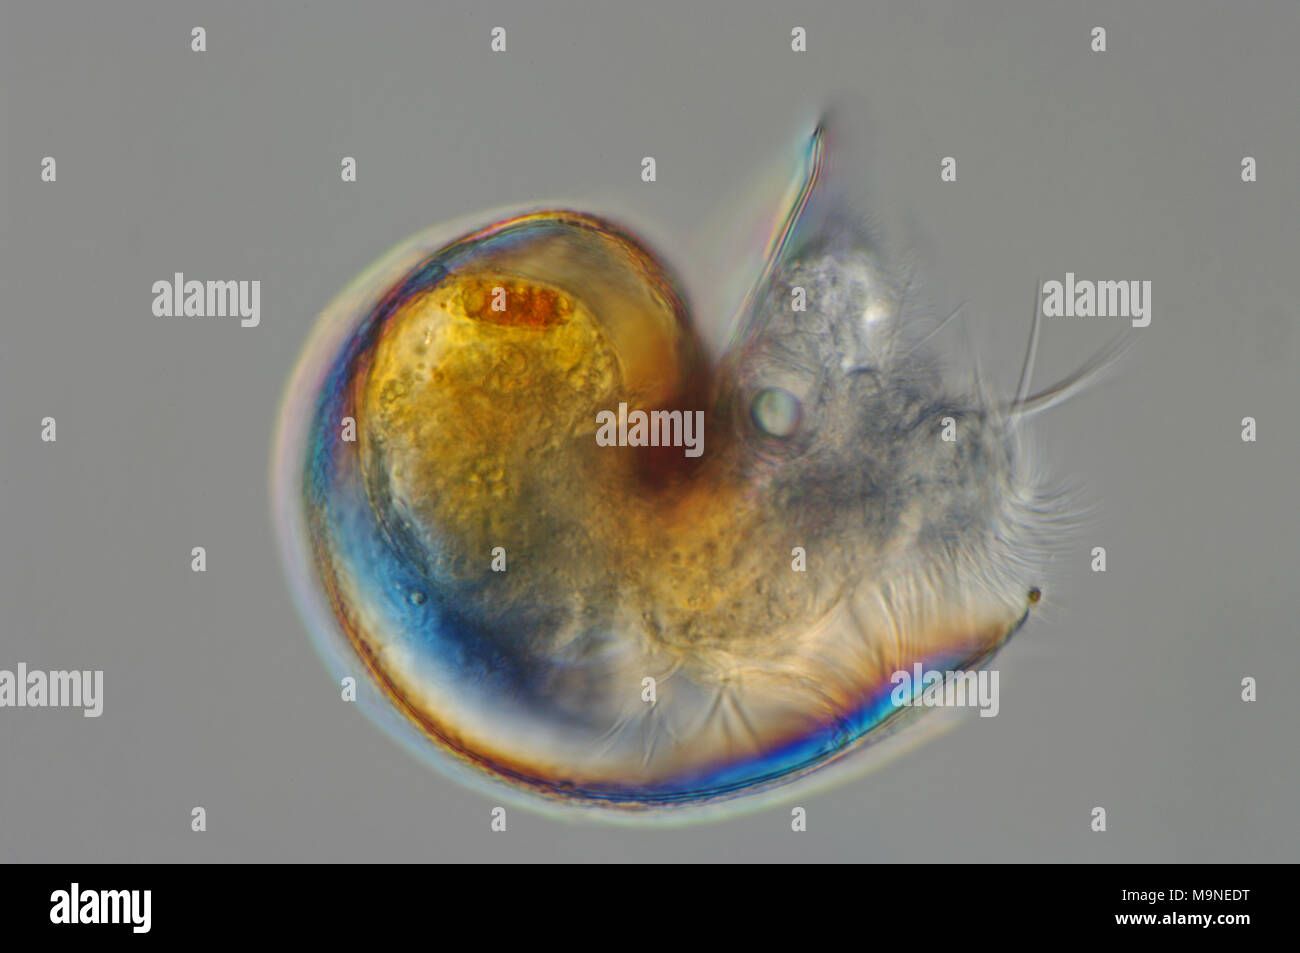 a planktonic veliger larva  from a sea snail - Stock Image